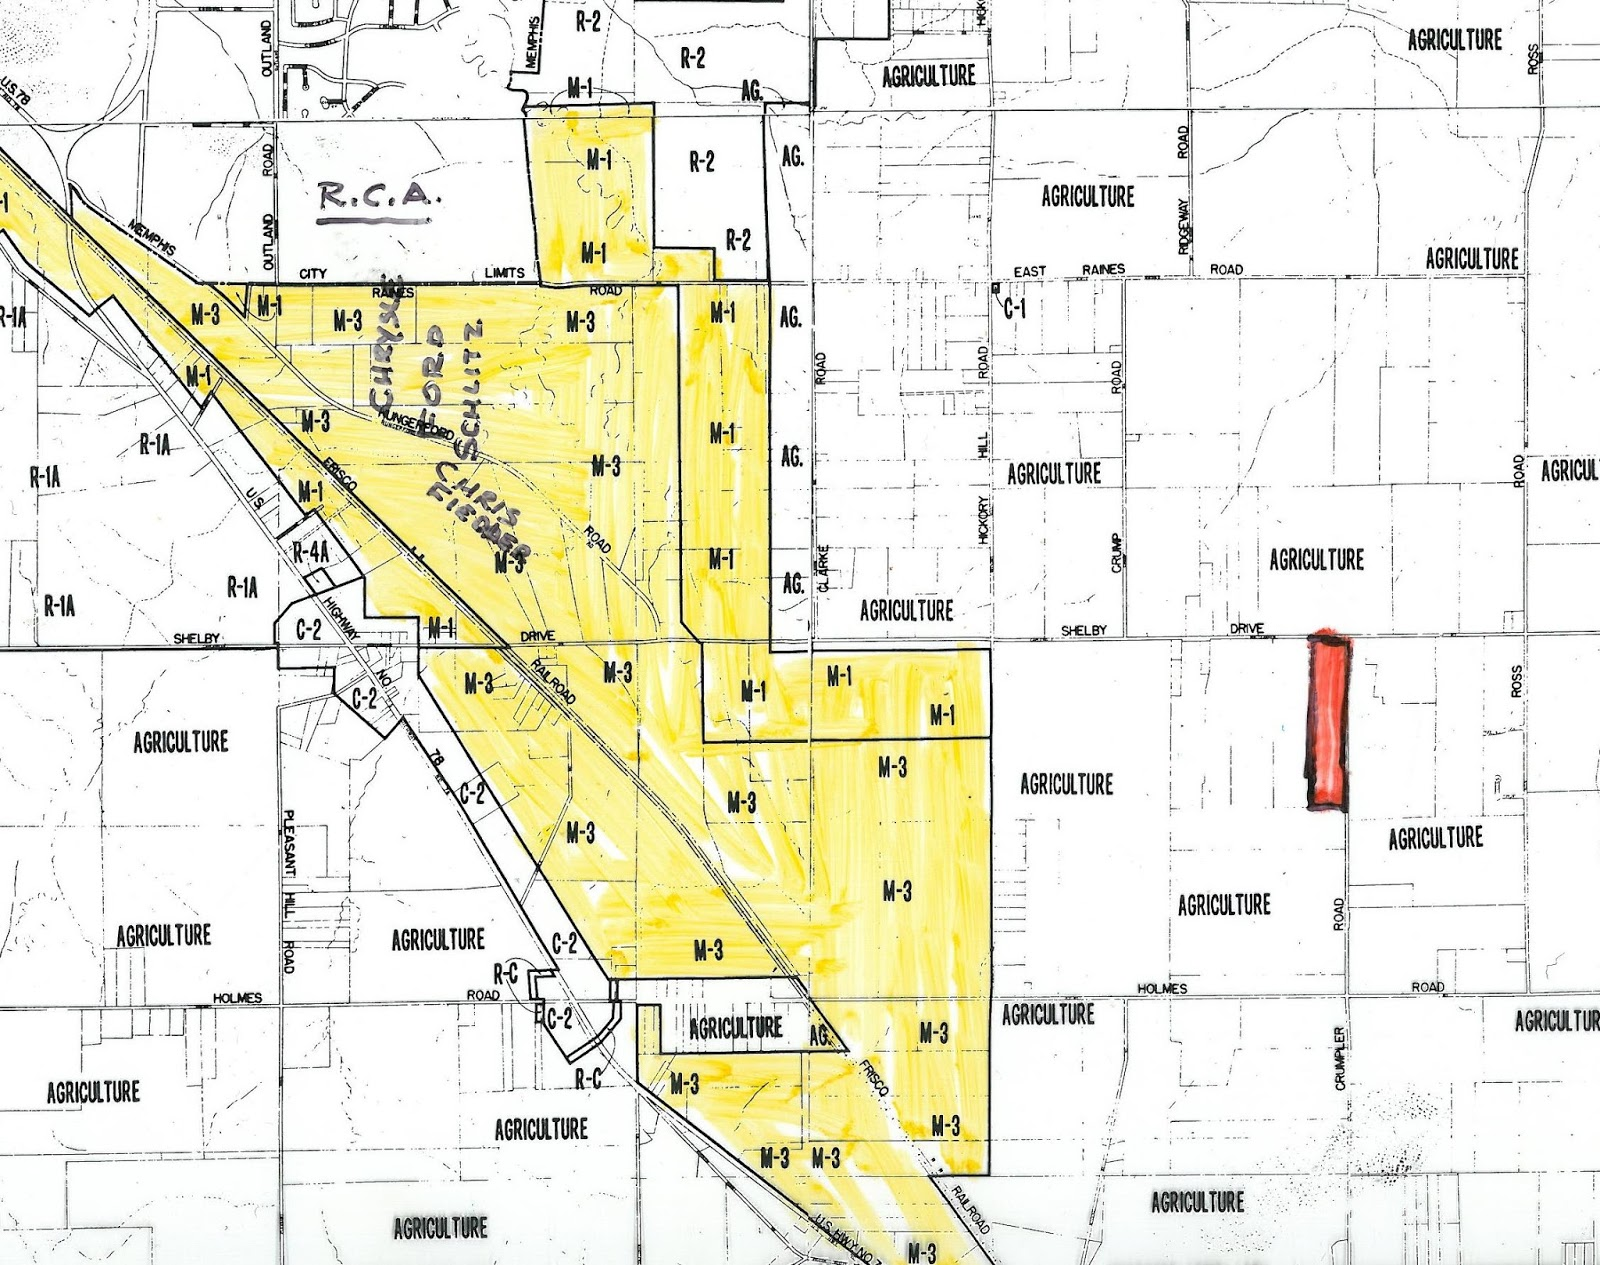 this map shows the proposed mobile home park in red in relative close proximity to the industrially zoned areas in yellow to its west which lined lamar